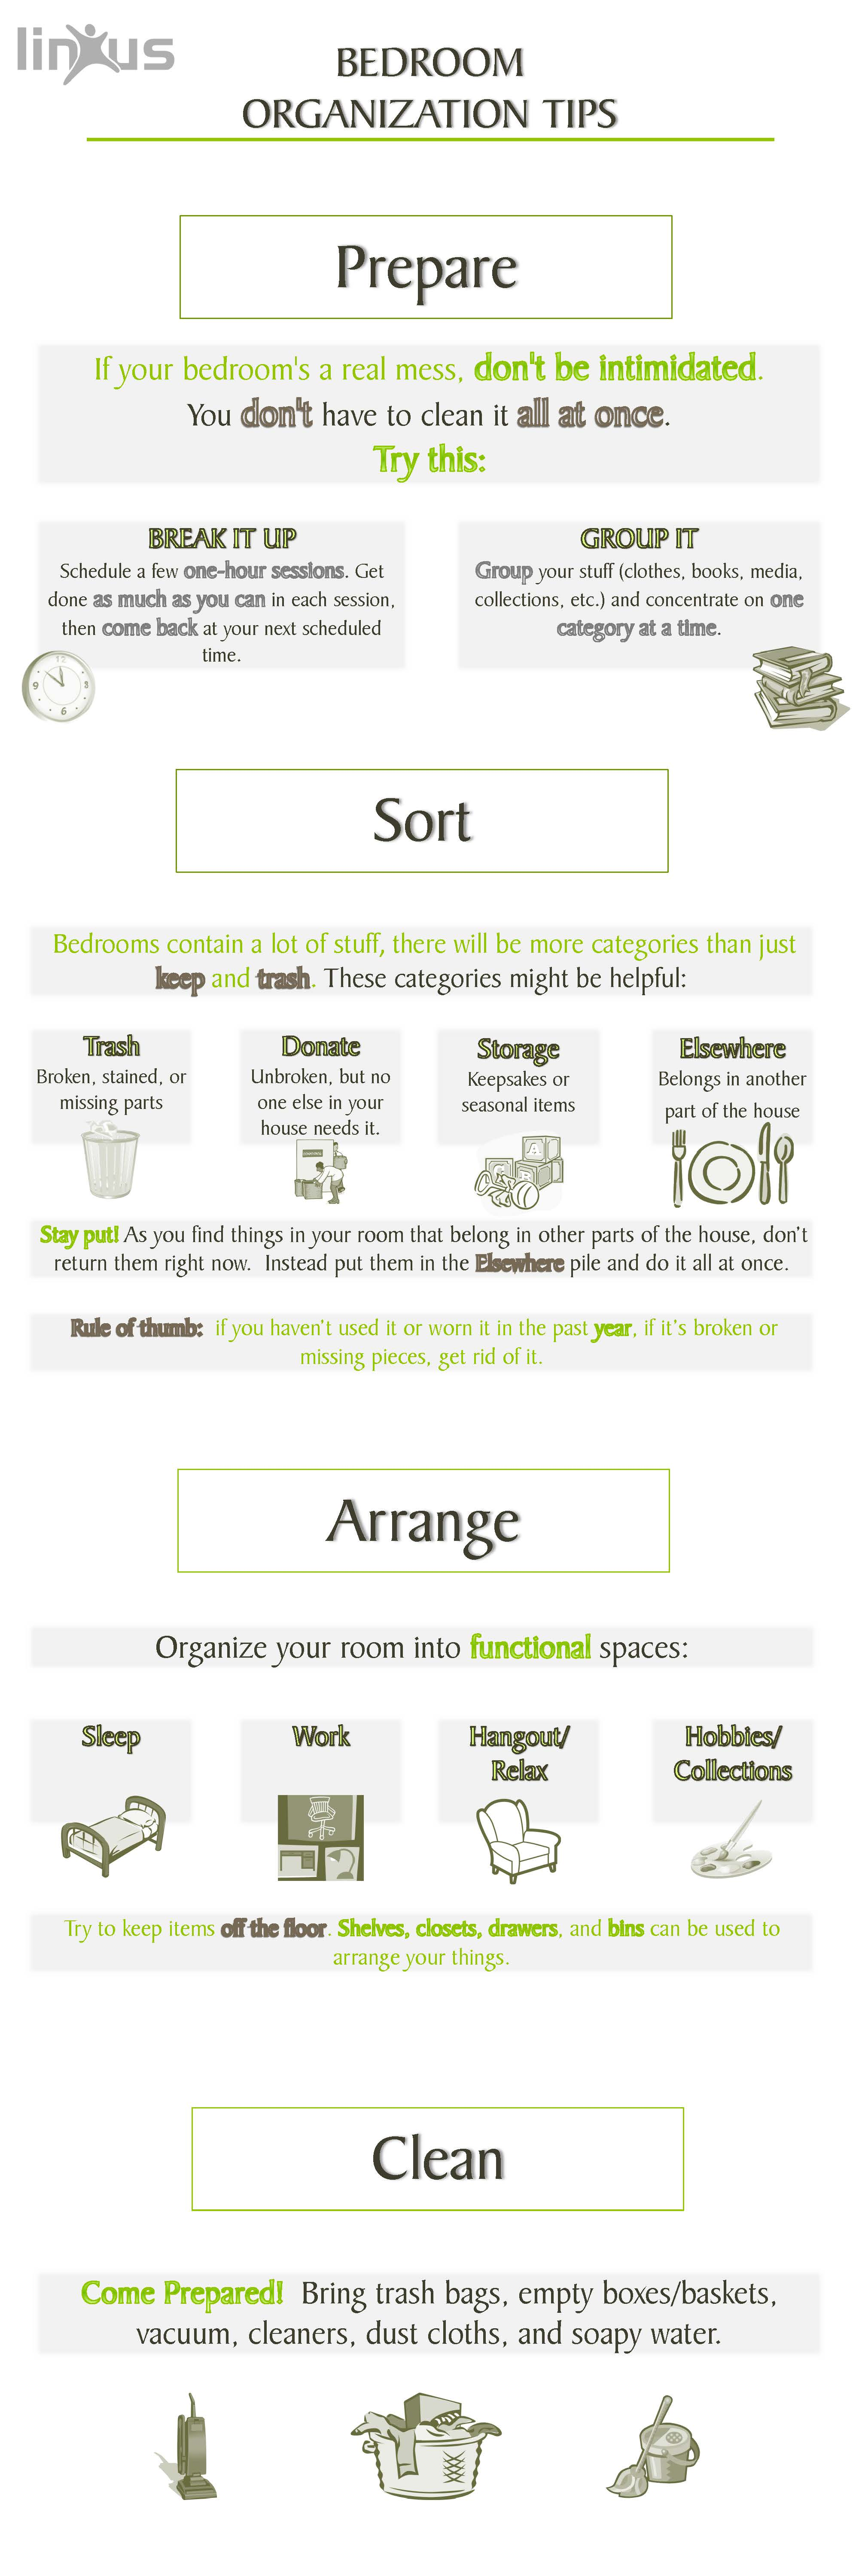 Bedroom Organization Tips_infographic